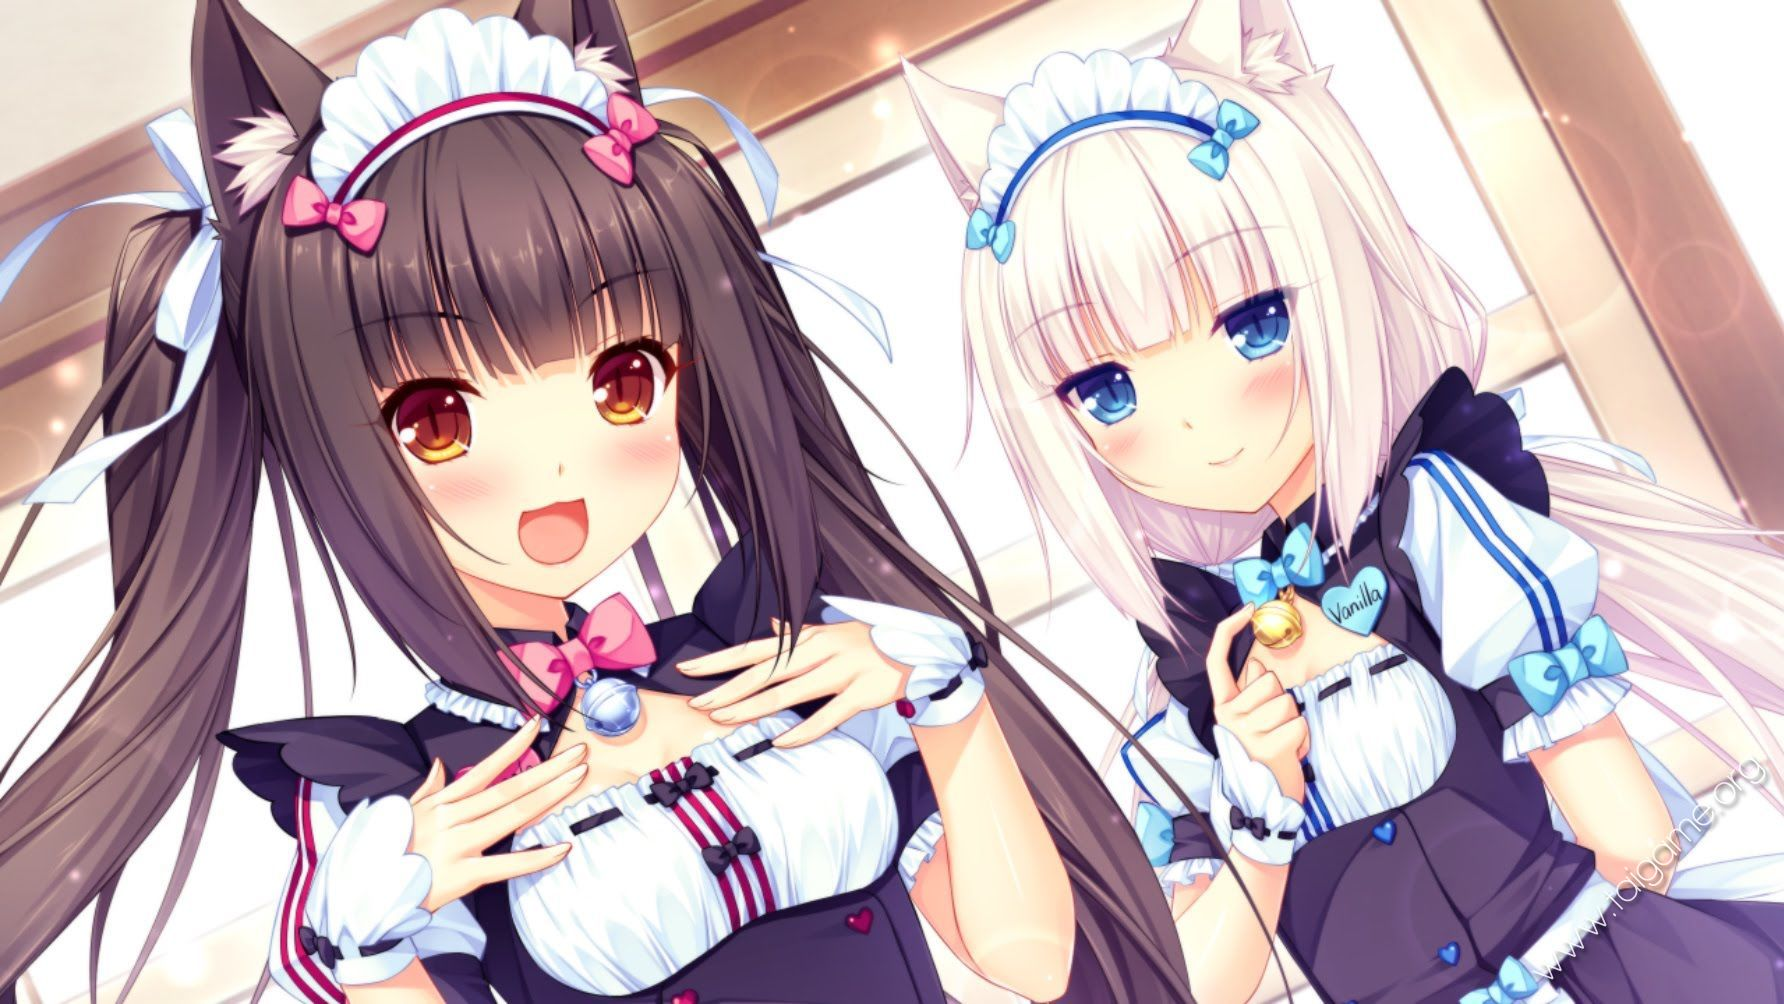 nekopara vol 1 tai game download game phi u l u. Black Bedroom Furniture Sets. Home Design Ideas